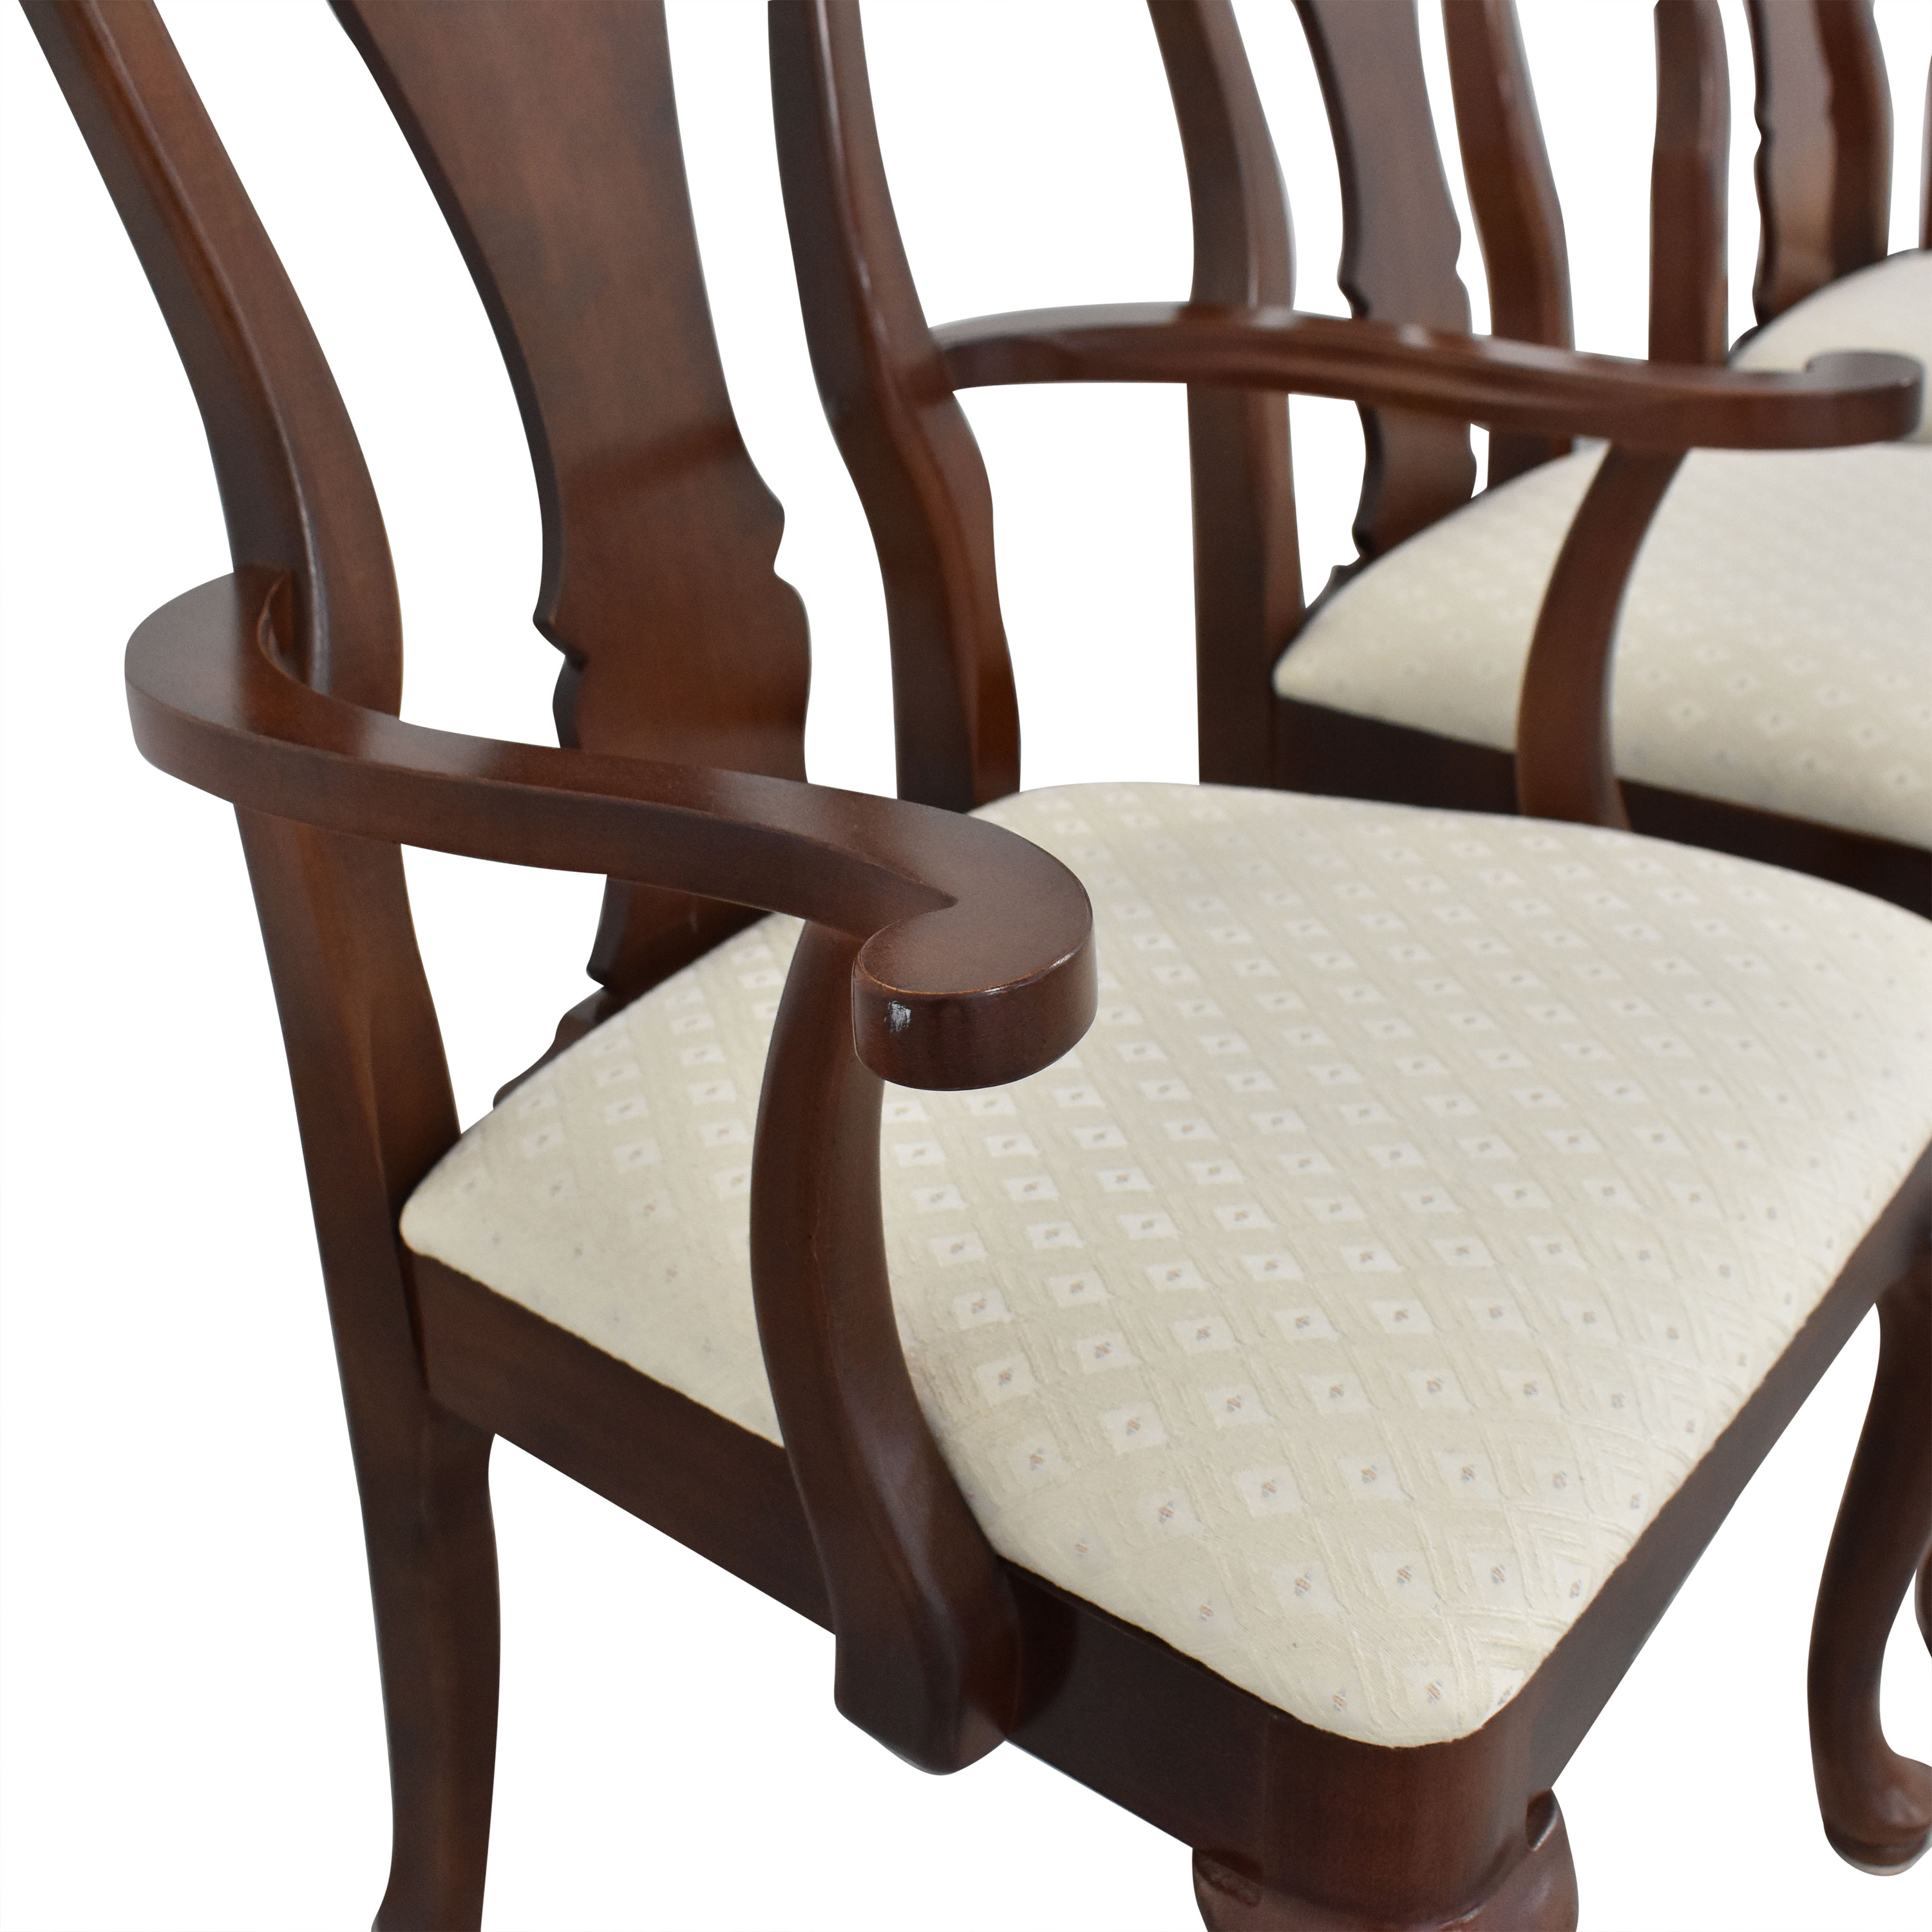 Thomasville Thomasville Queen Anne Dining Chairs dimensions